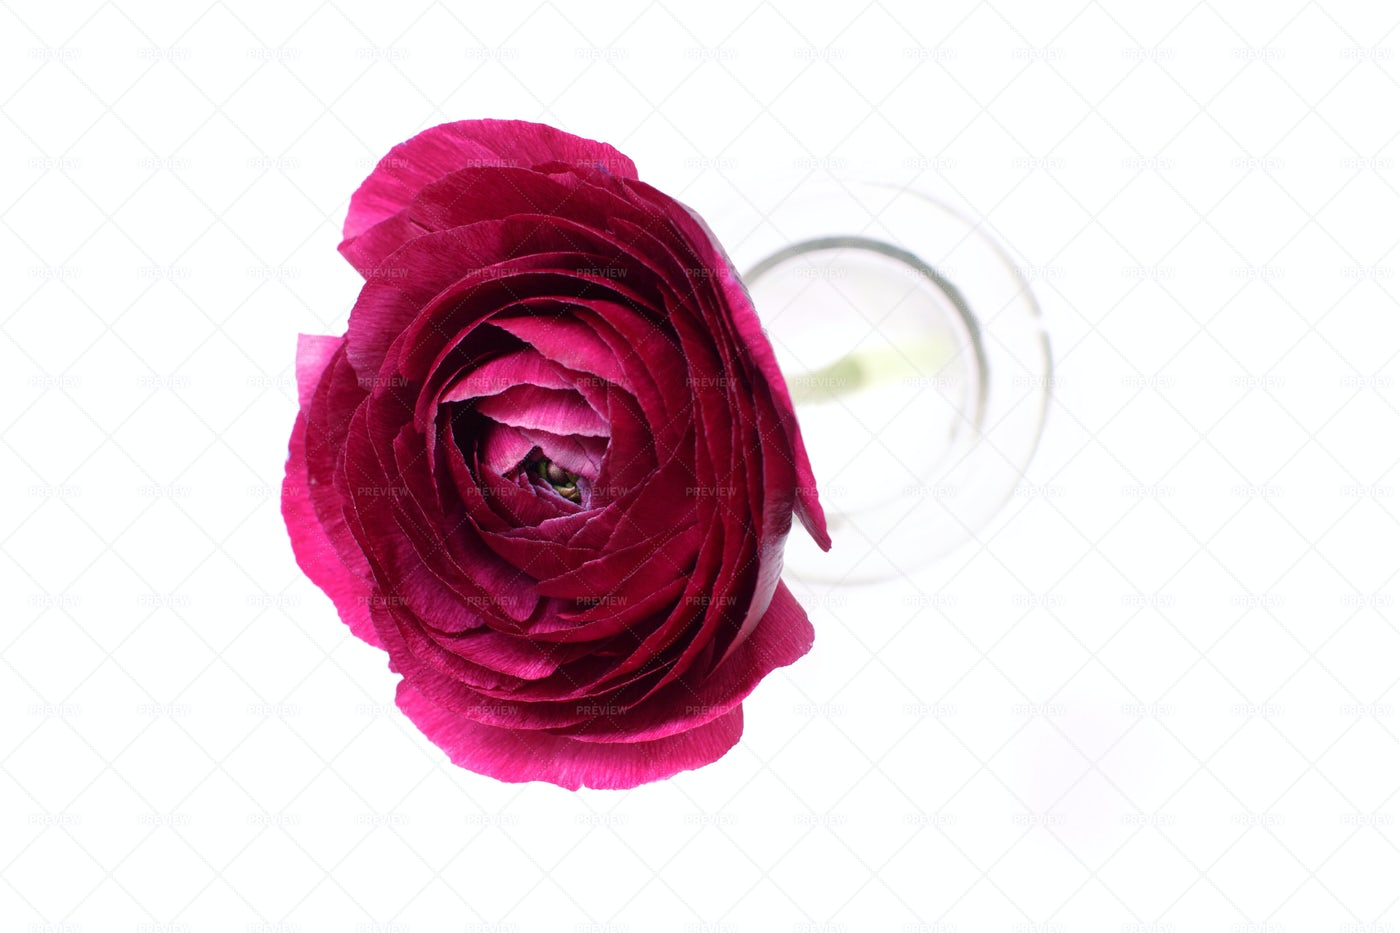 Pink Flower In A Bottle: Stock Photos